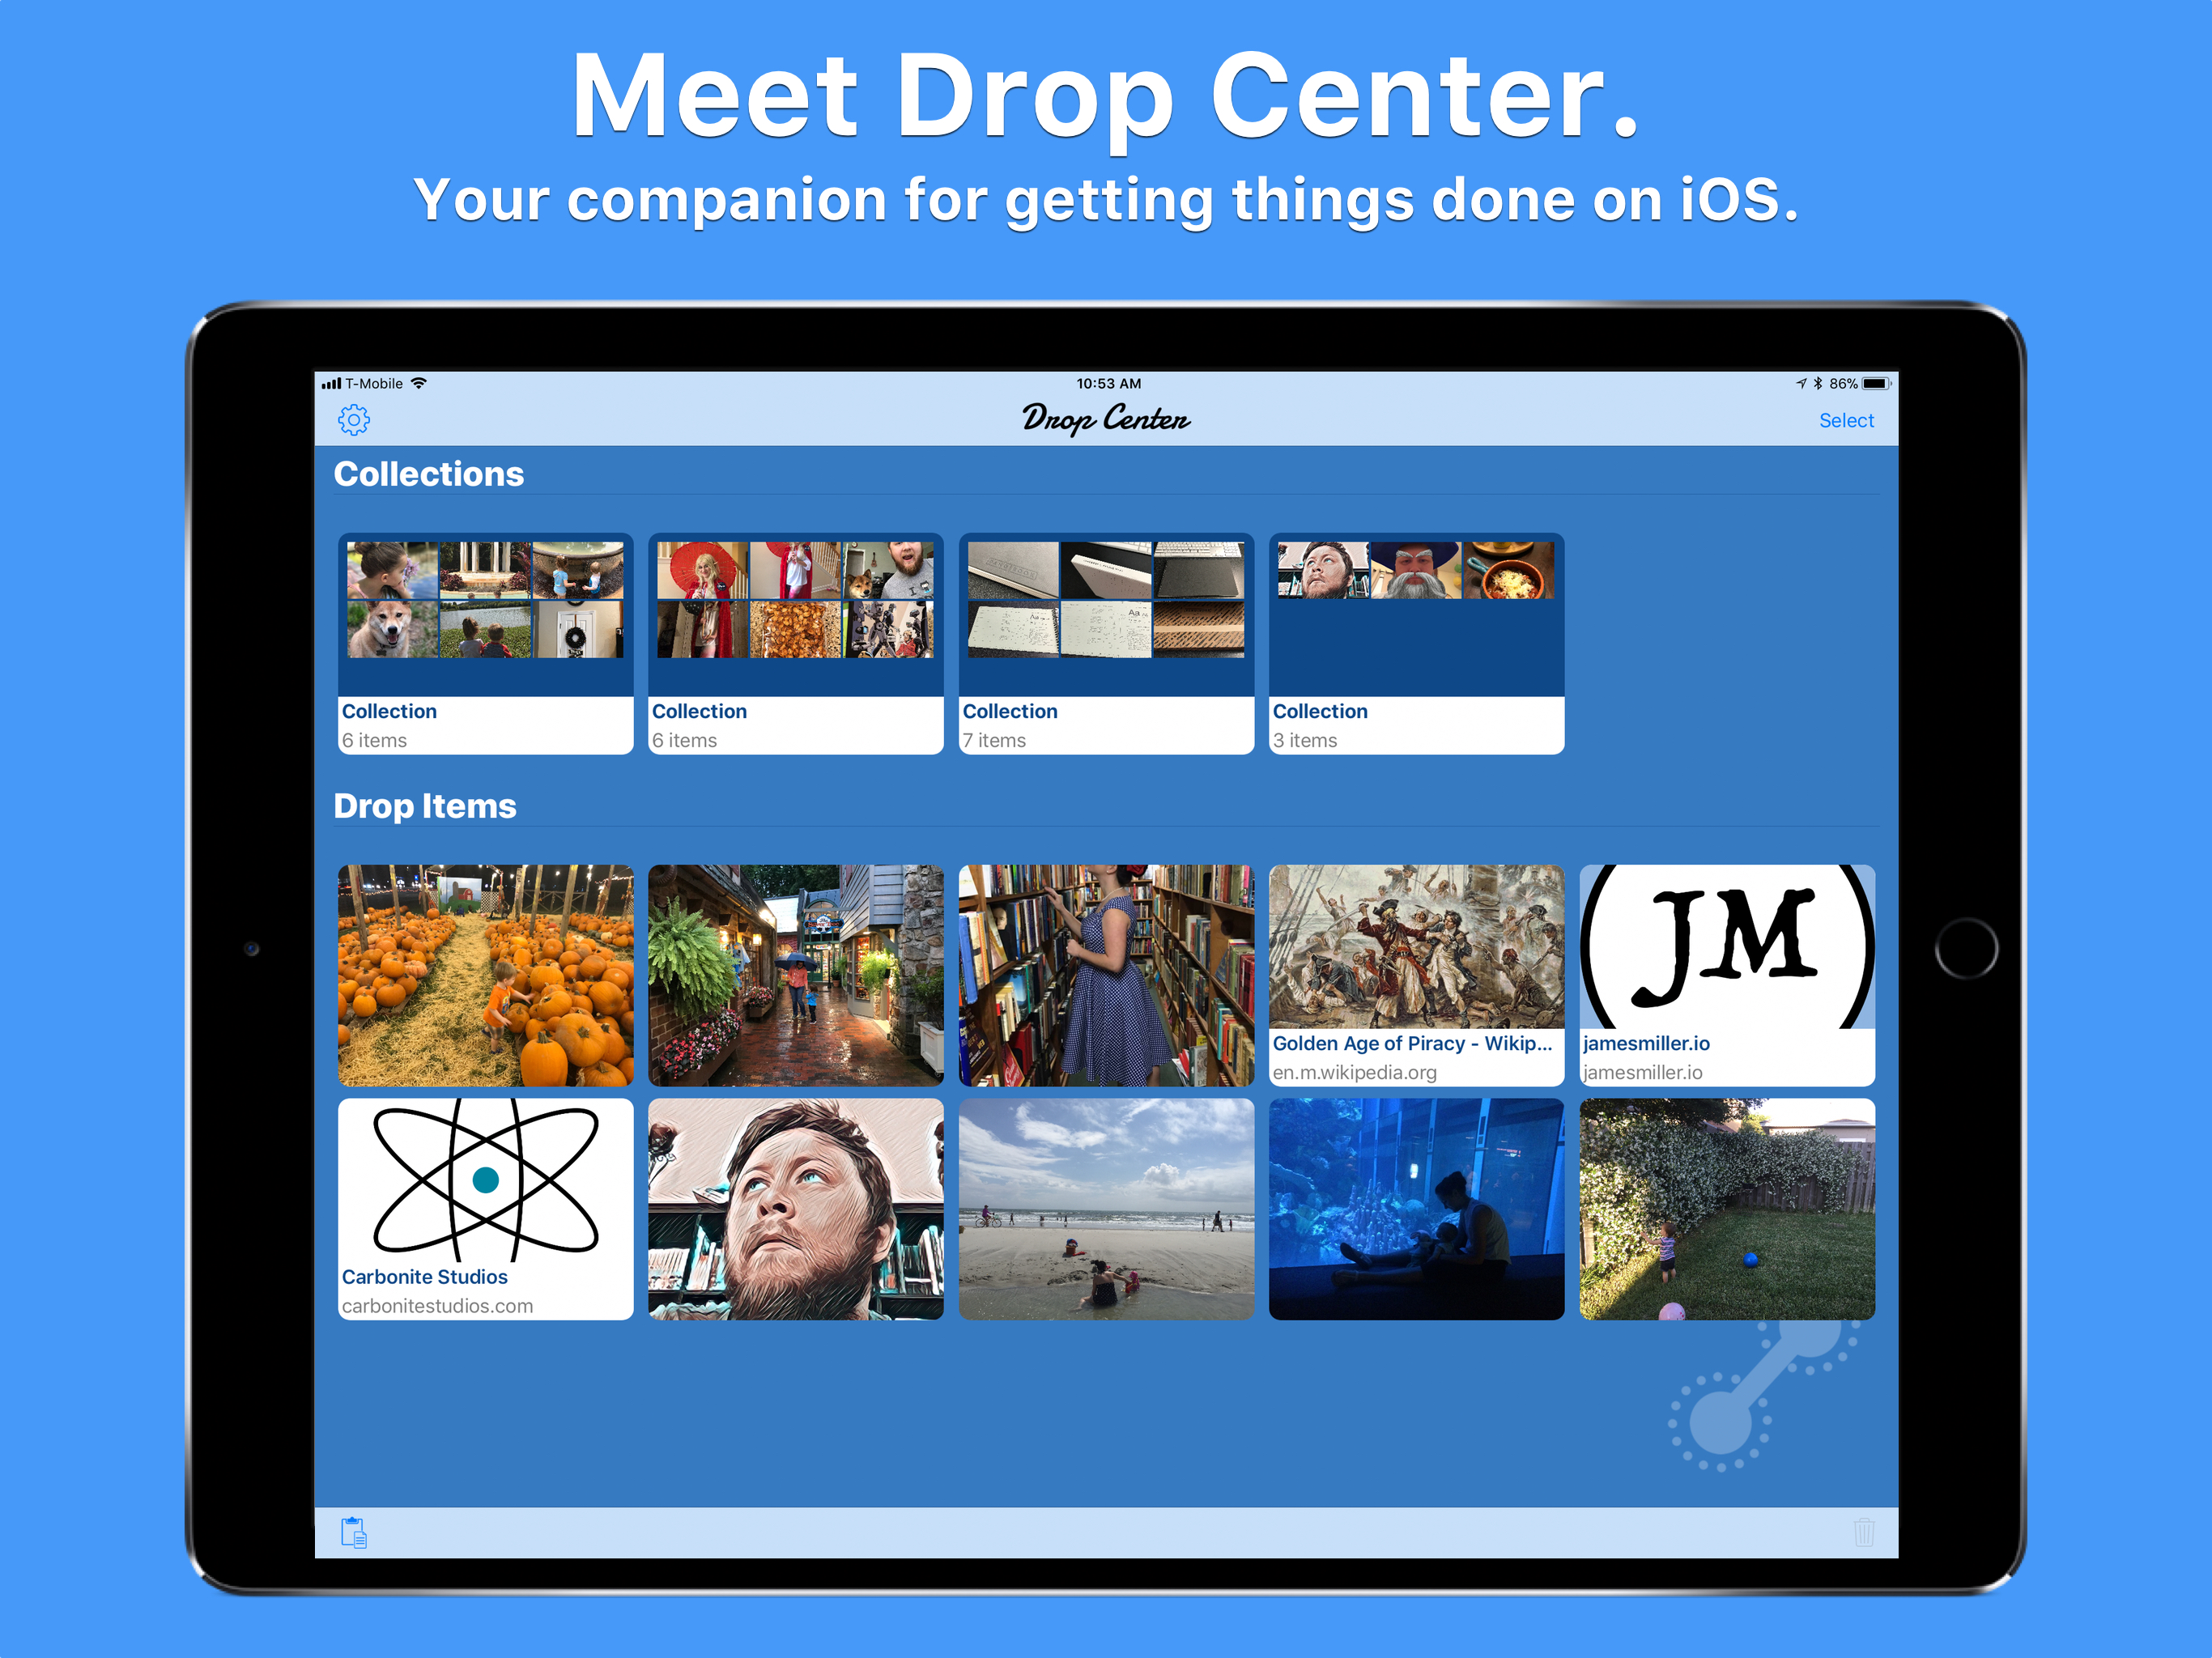 Meet Drop Center